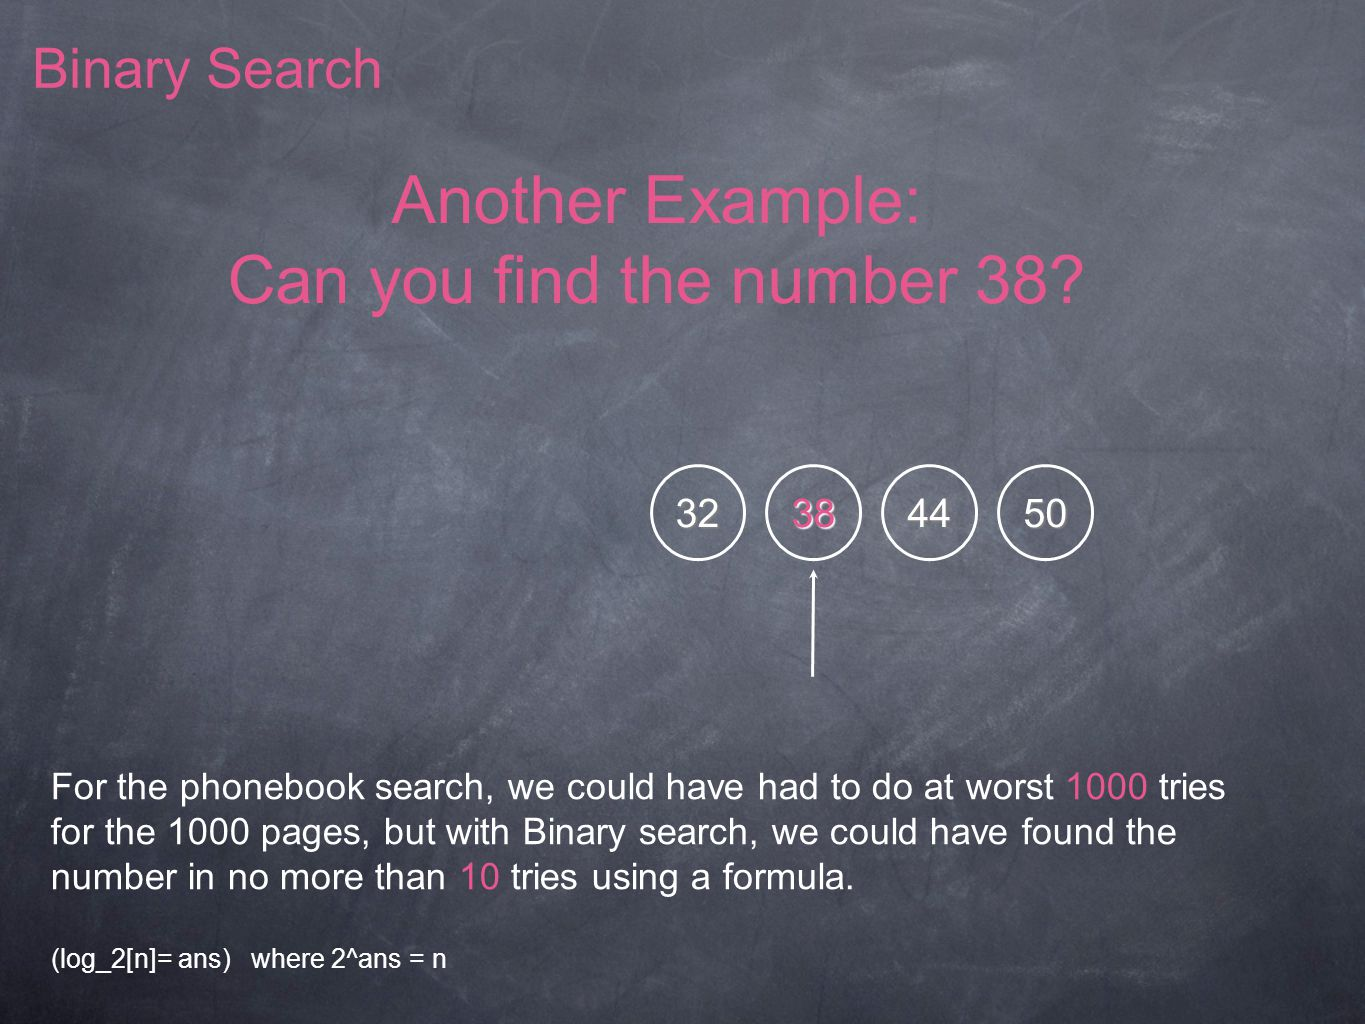 32384450 Binary Search Another Example: Can you find the number 38.